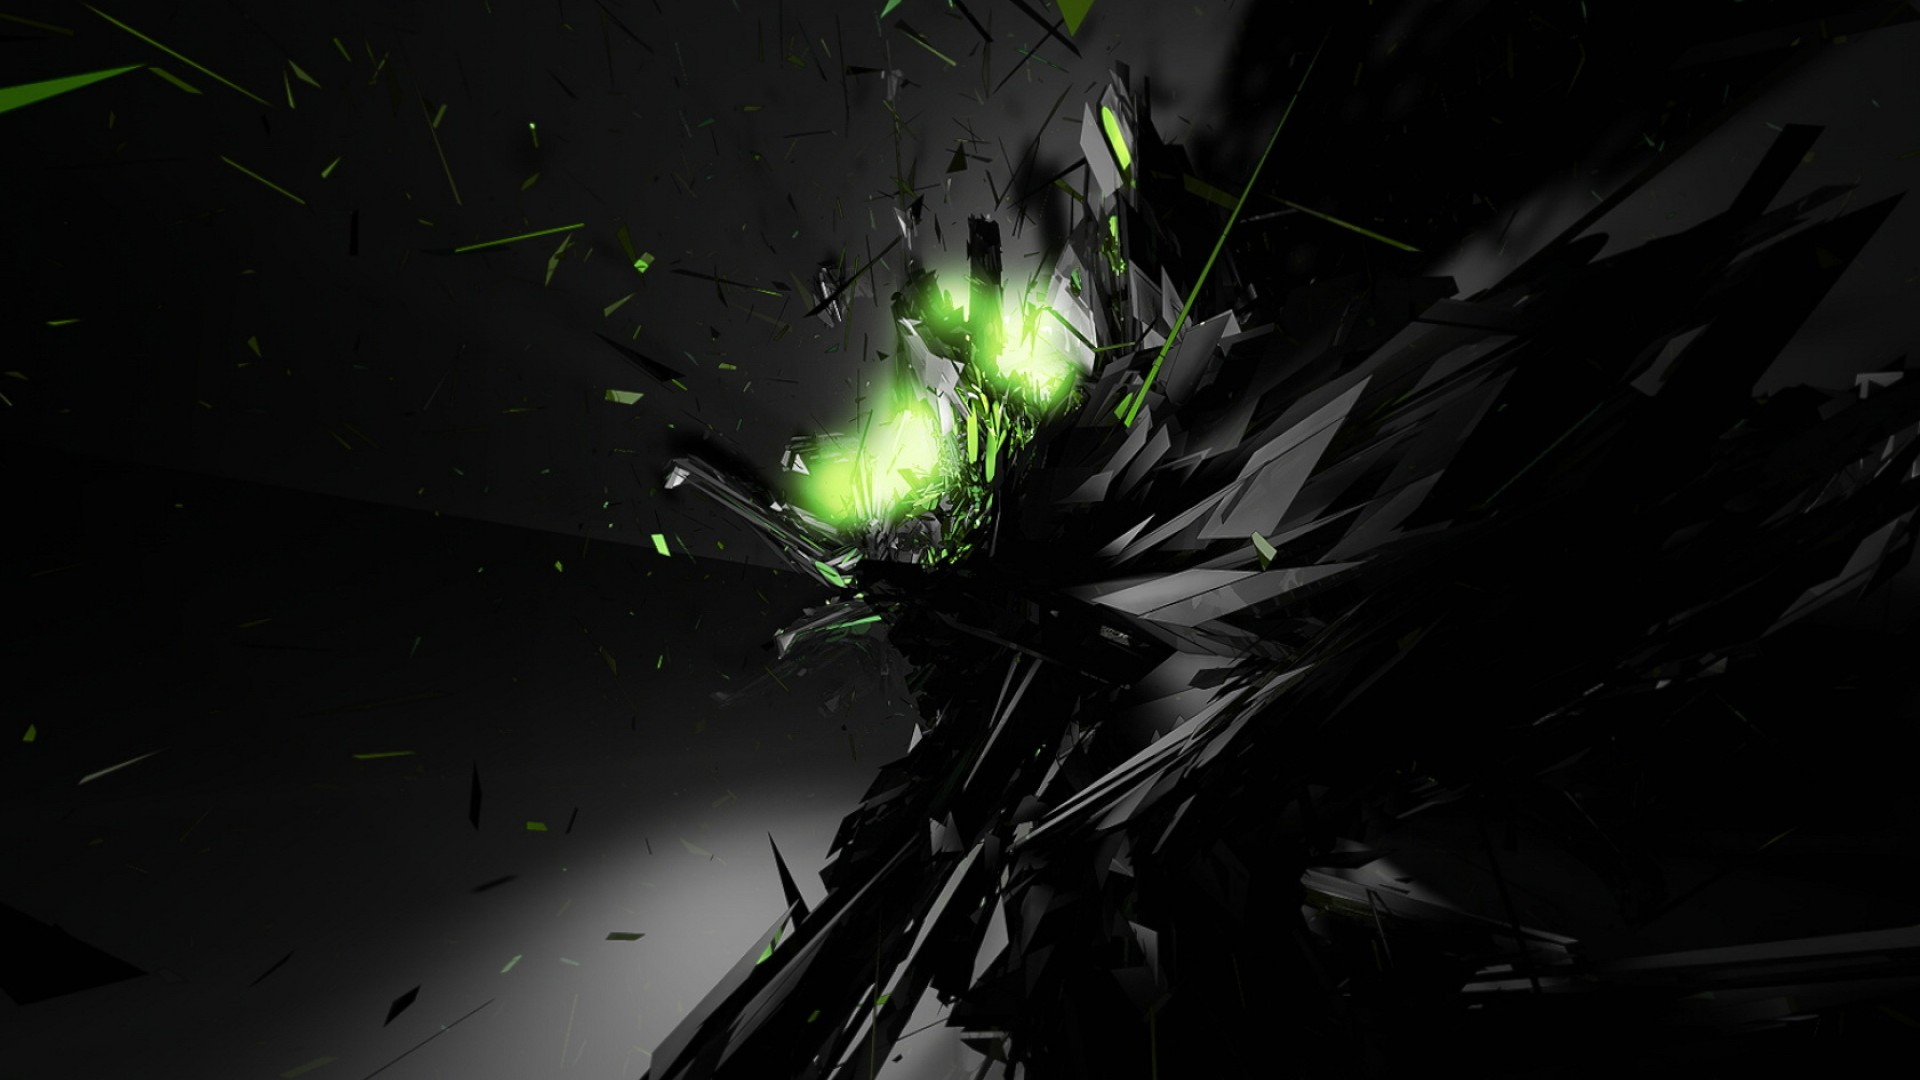 Black Abstract Green Glow Desktop Wallpaper High Quality Wallpapers 1920x1080